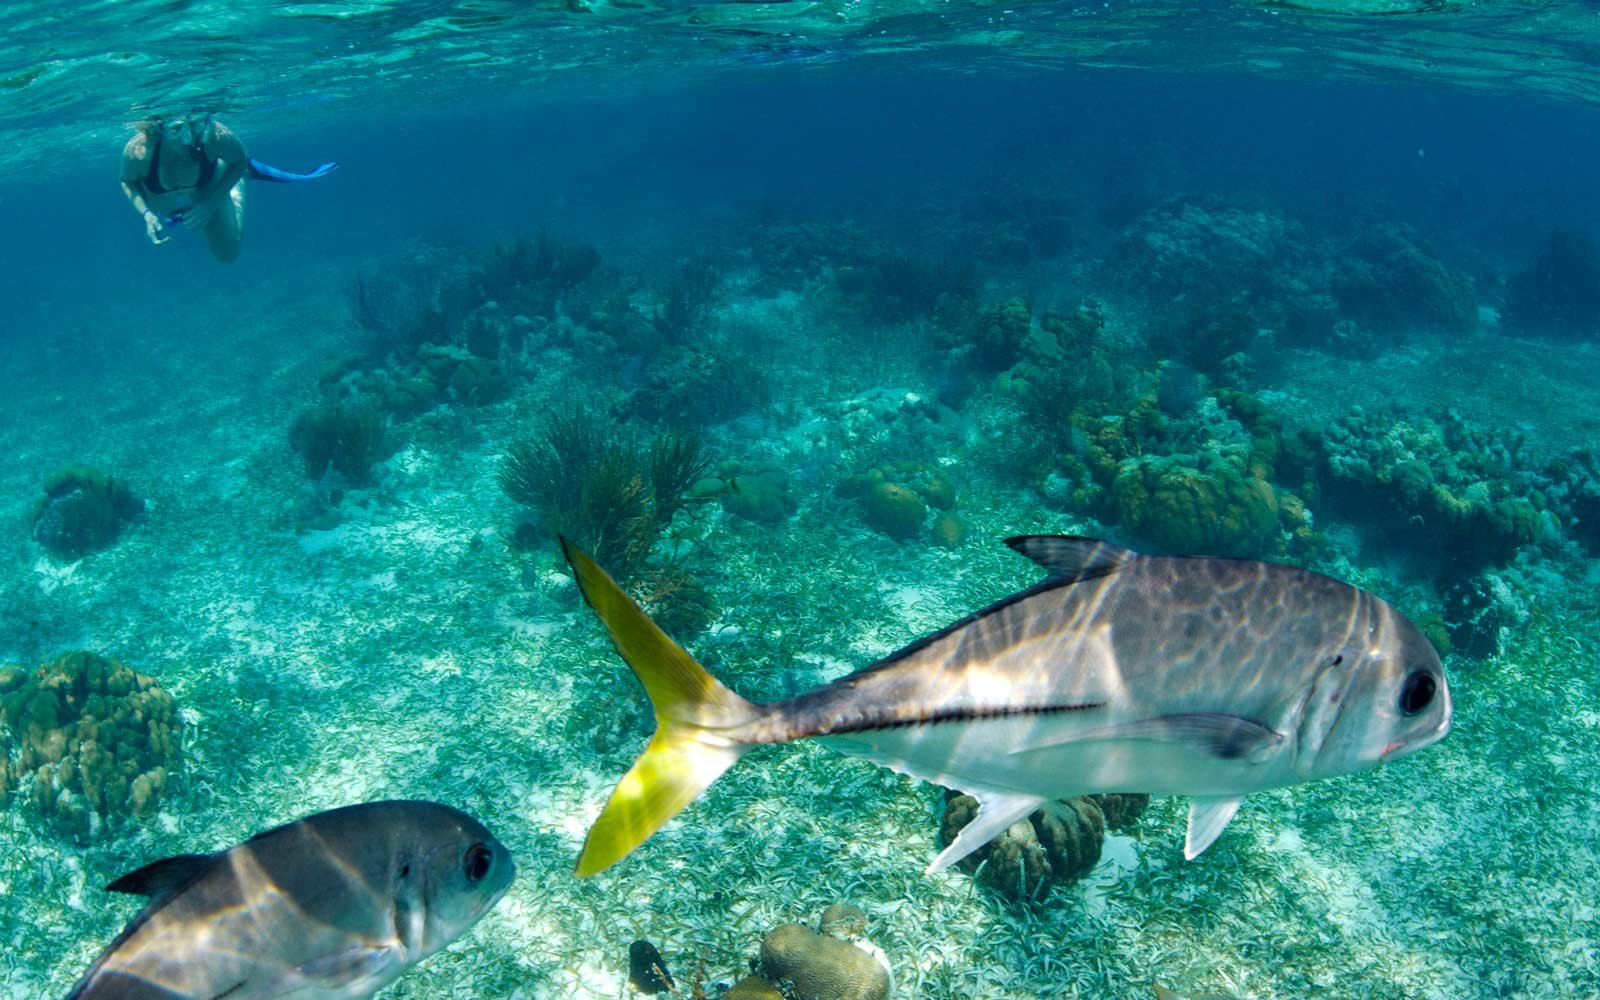 Snorkeling Spots You Need To Add To Your Bucket List Travel - The snorkeling guide to florida 10 spots for underwater exploring